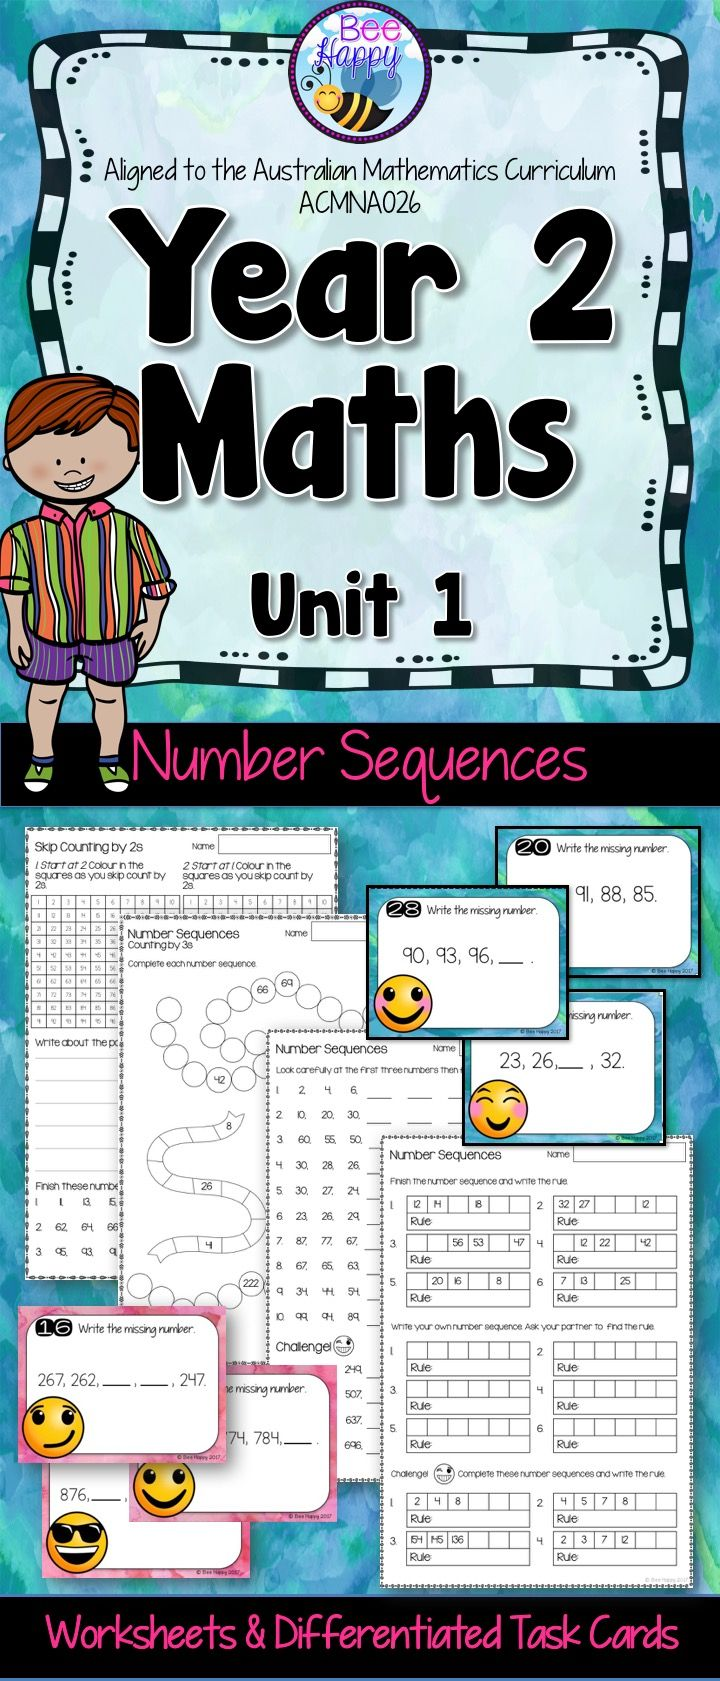 Uncategorized Snappy Maths Worksheets best 25 year 2 maths ideas on pinterest these worksheets printables and task cards cover number patterns in two levels the